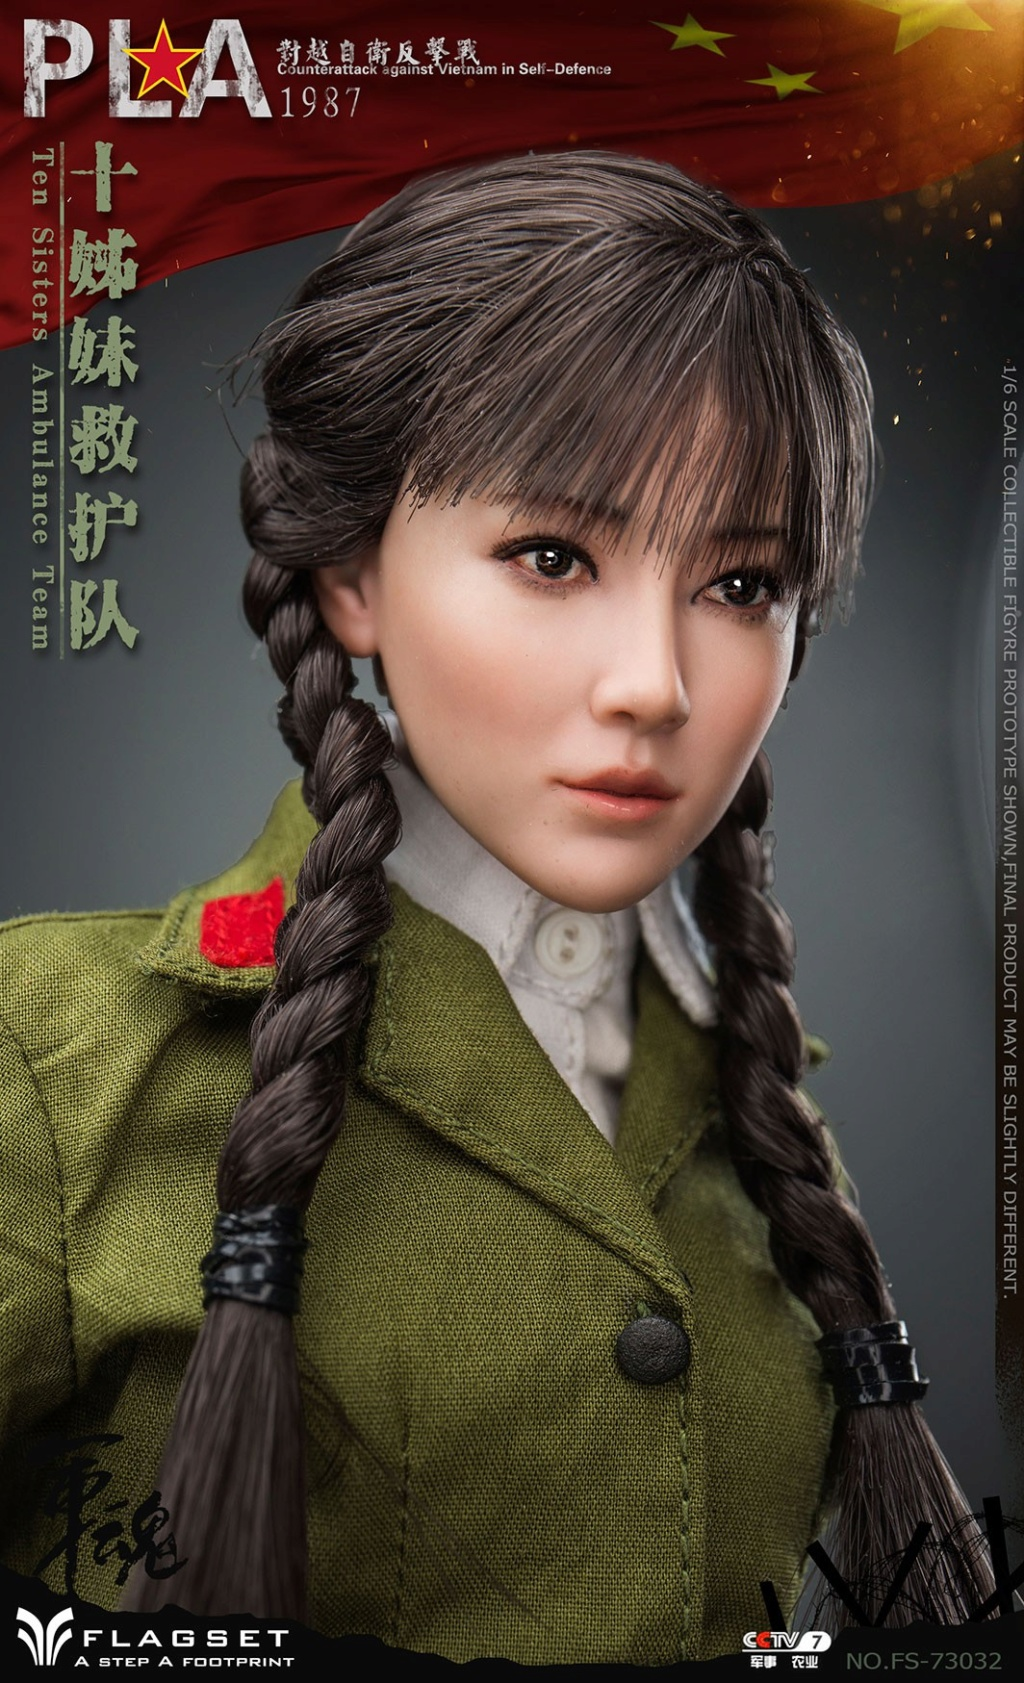 CounterAttack - NEW PRODUCT: Flagset: 1/6 counterattack against Vietnam-female soldiers of the ten sisters rescue team of the Chinese People's Liberation Army (FS73032#) 06541110